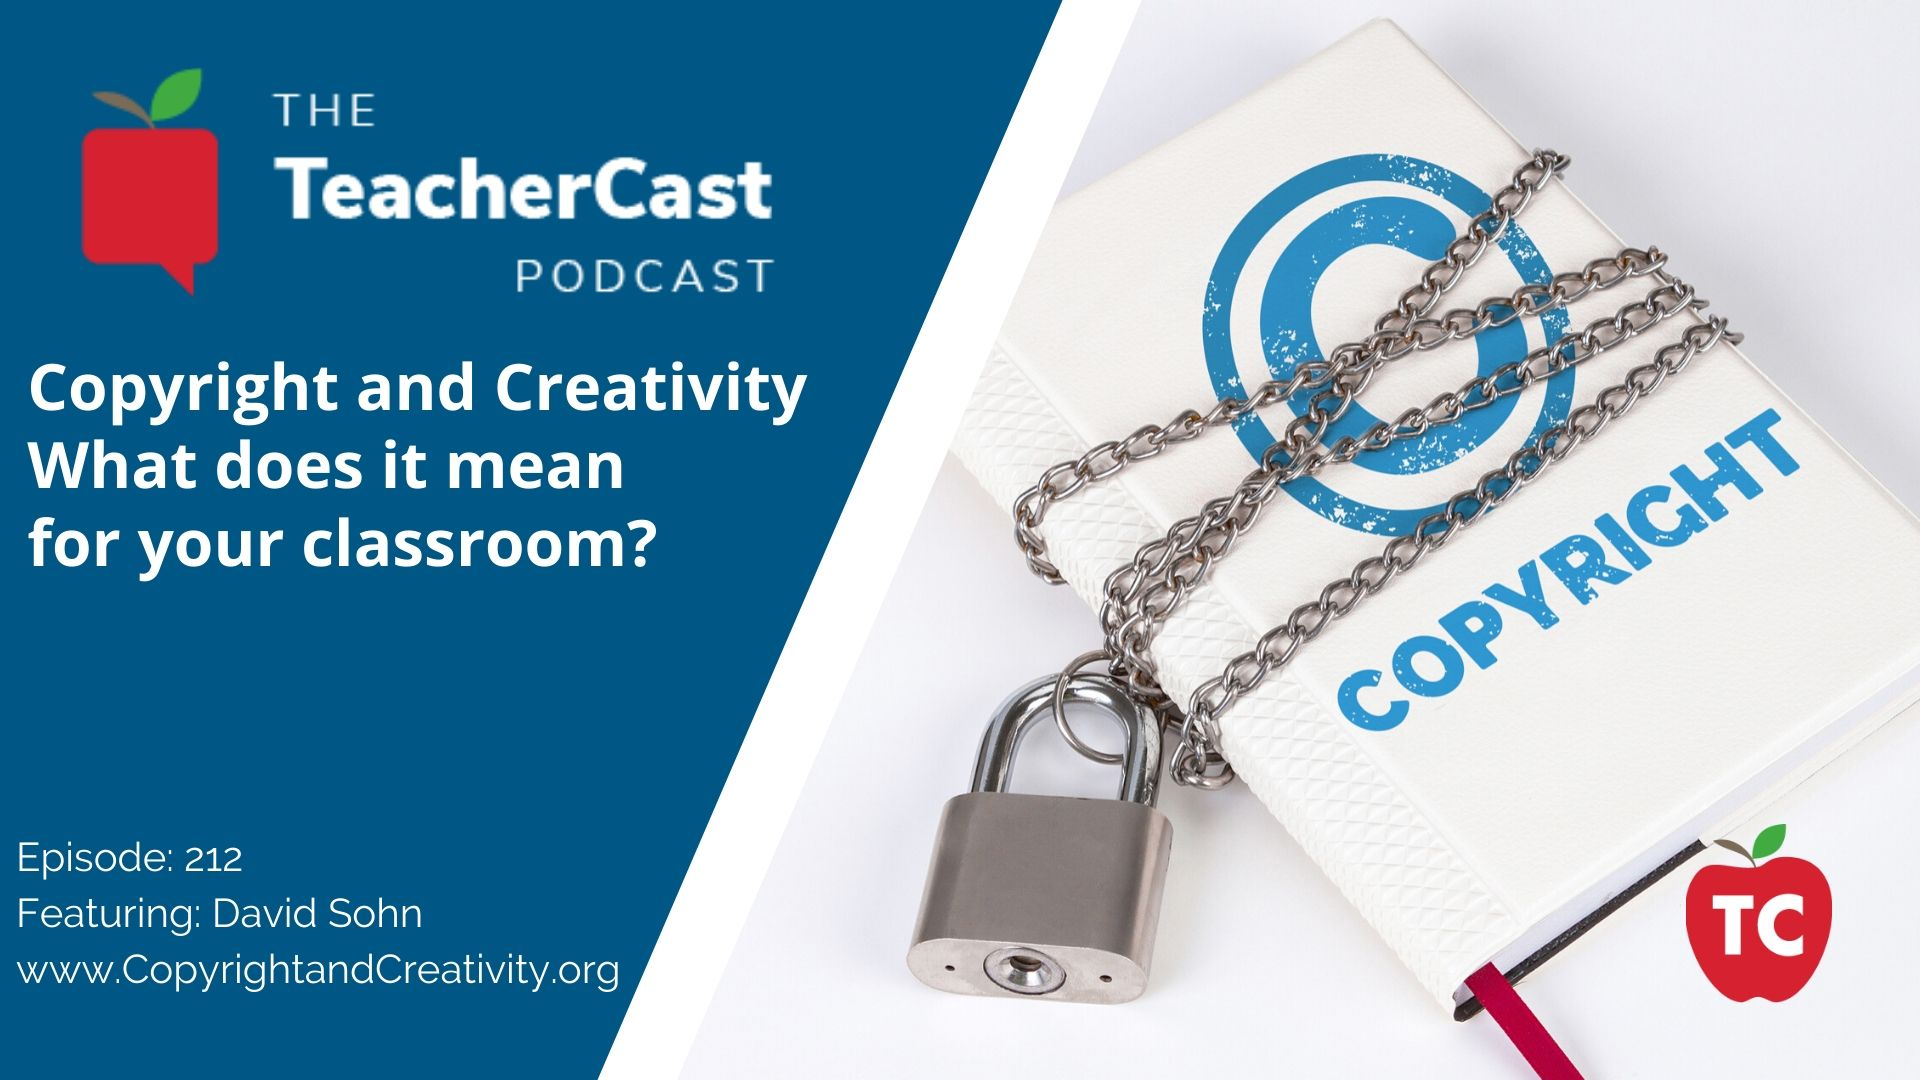 Copyright and Creativity in the Classroom